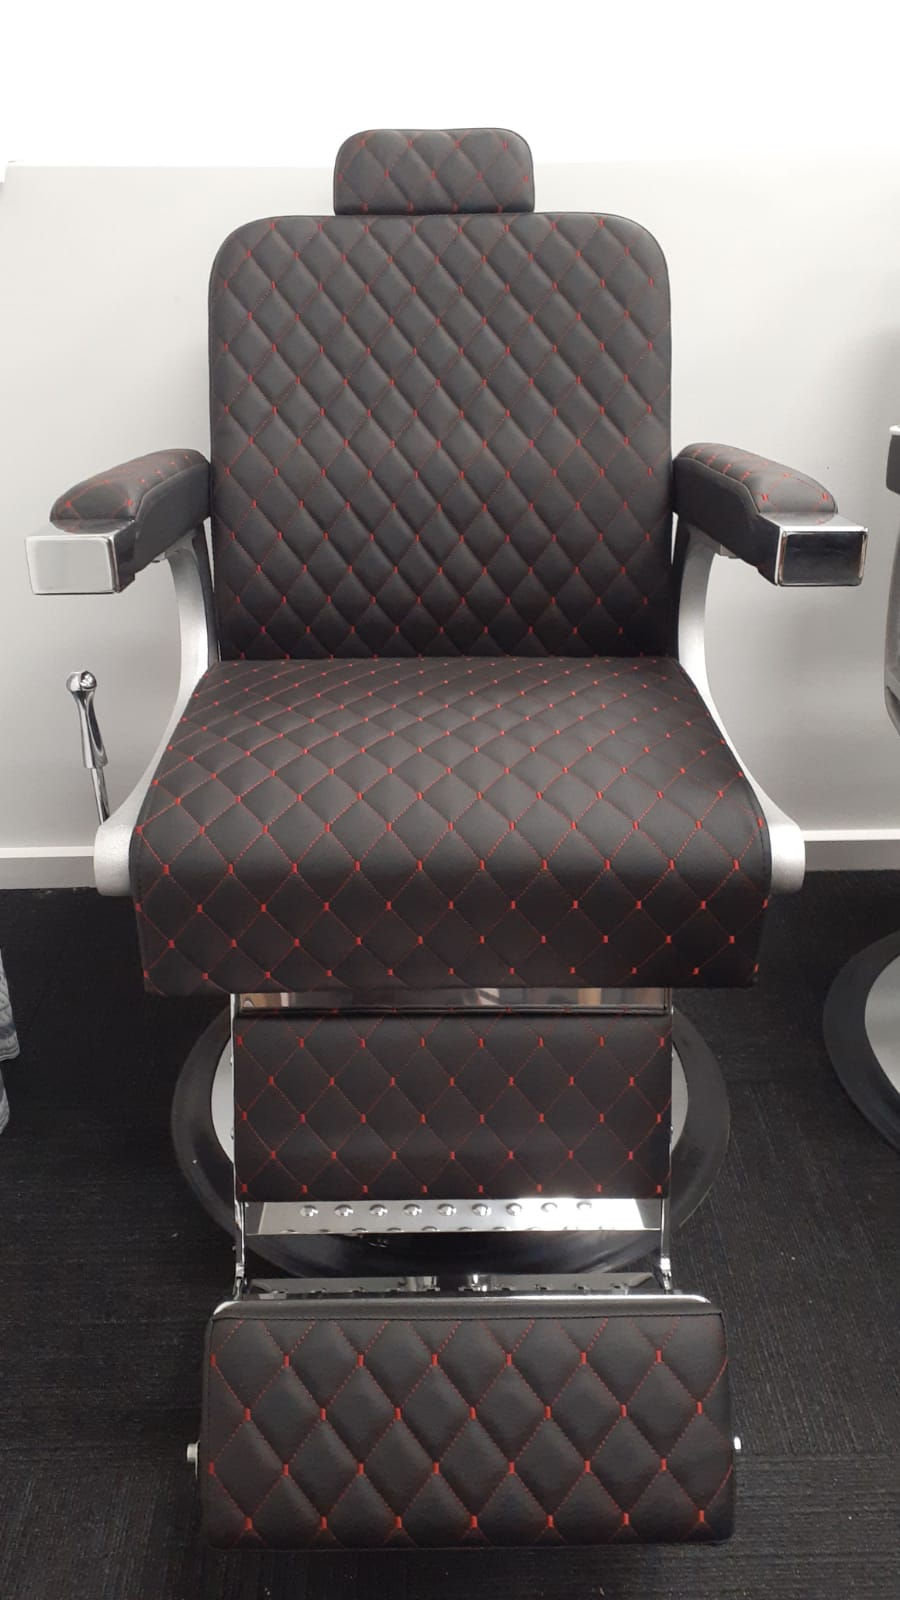 Barber Chair - BEY The Raider (Red Crossed Stitches)